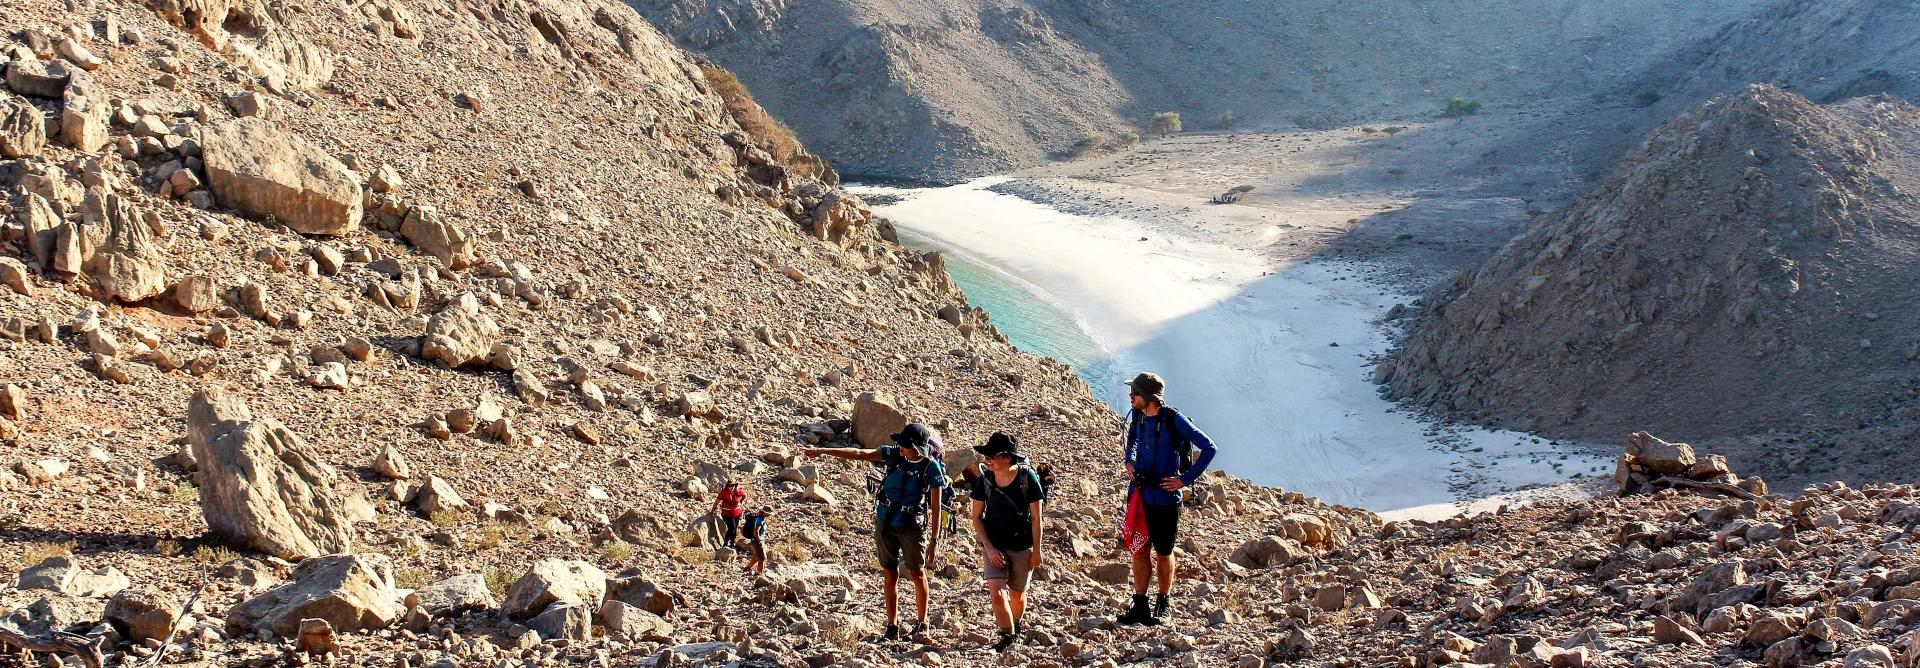 Hiking up dry mountains on the Oman mountain trek